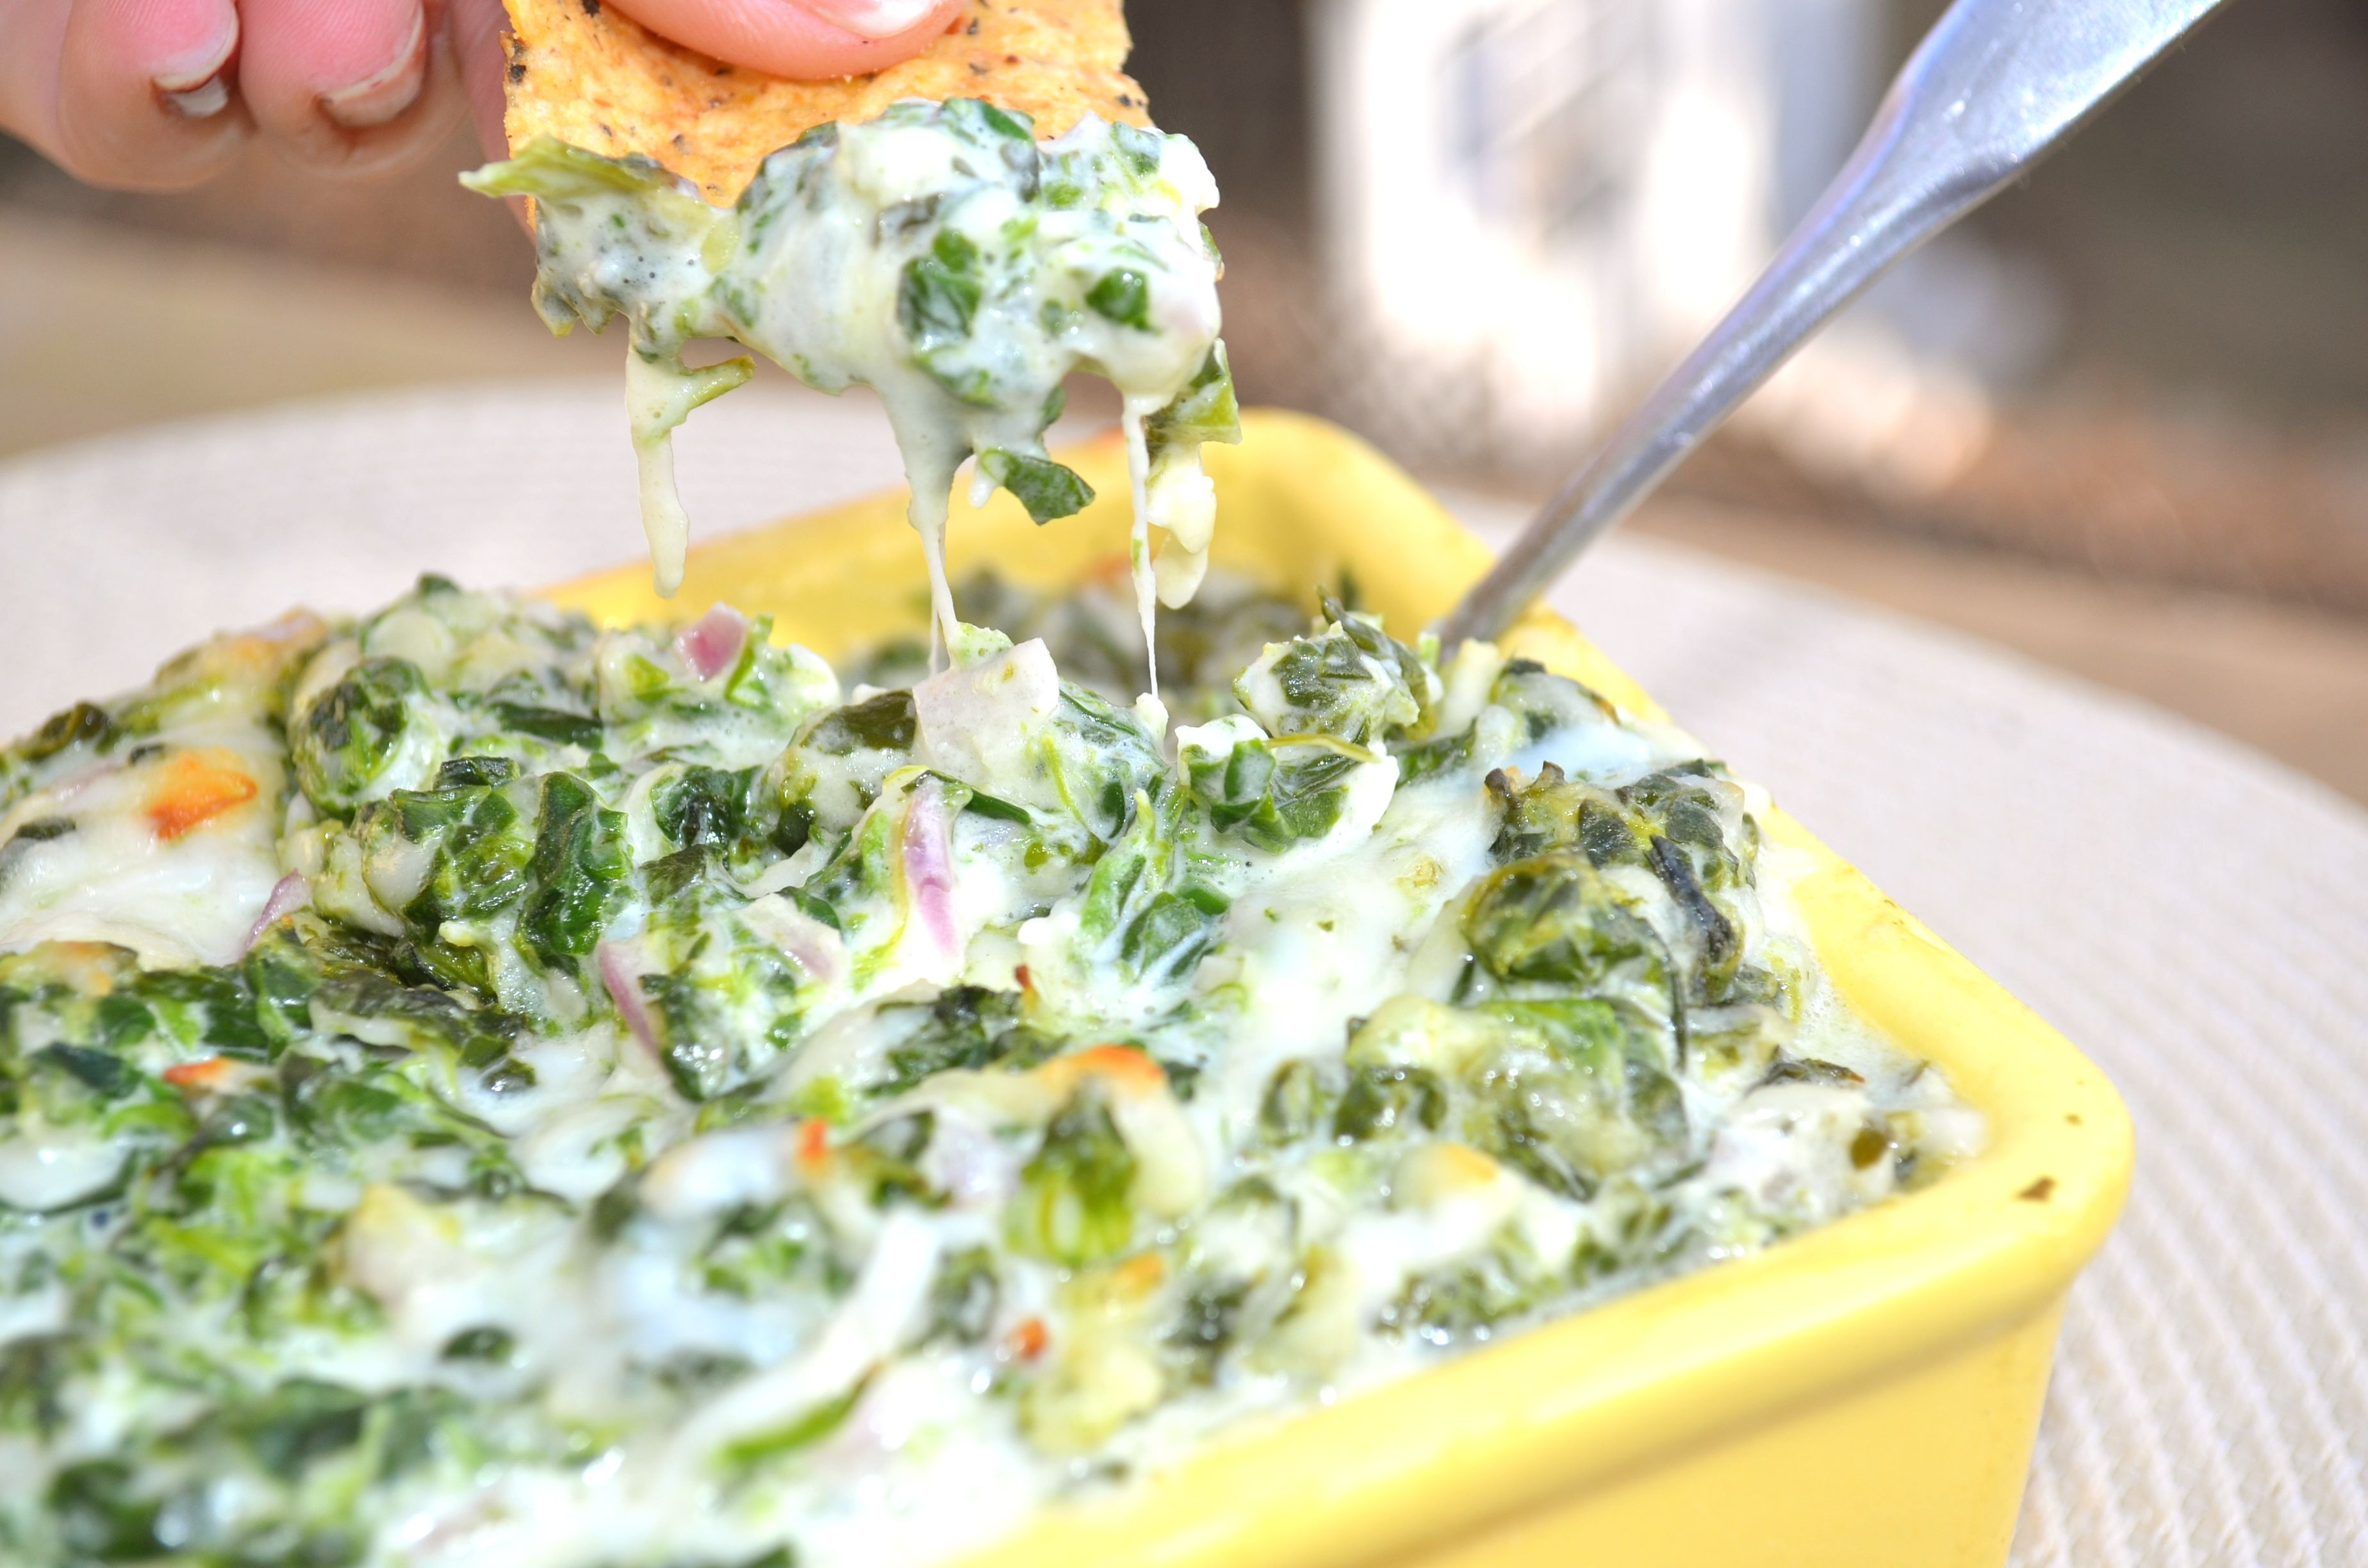 Skinny Hot Spinach Dip, perfect for Sunday Football!